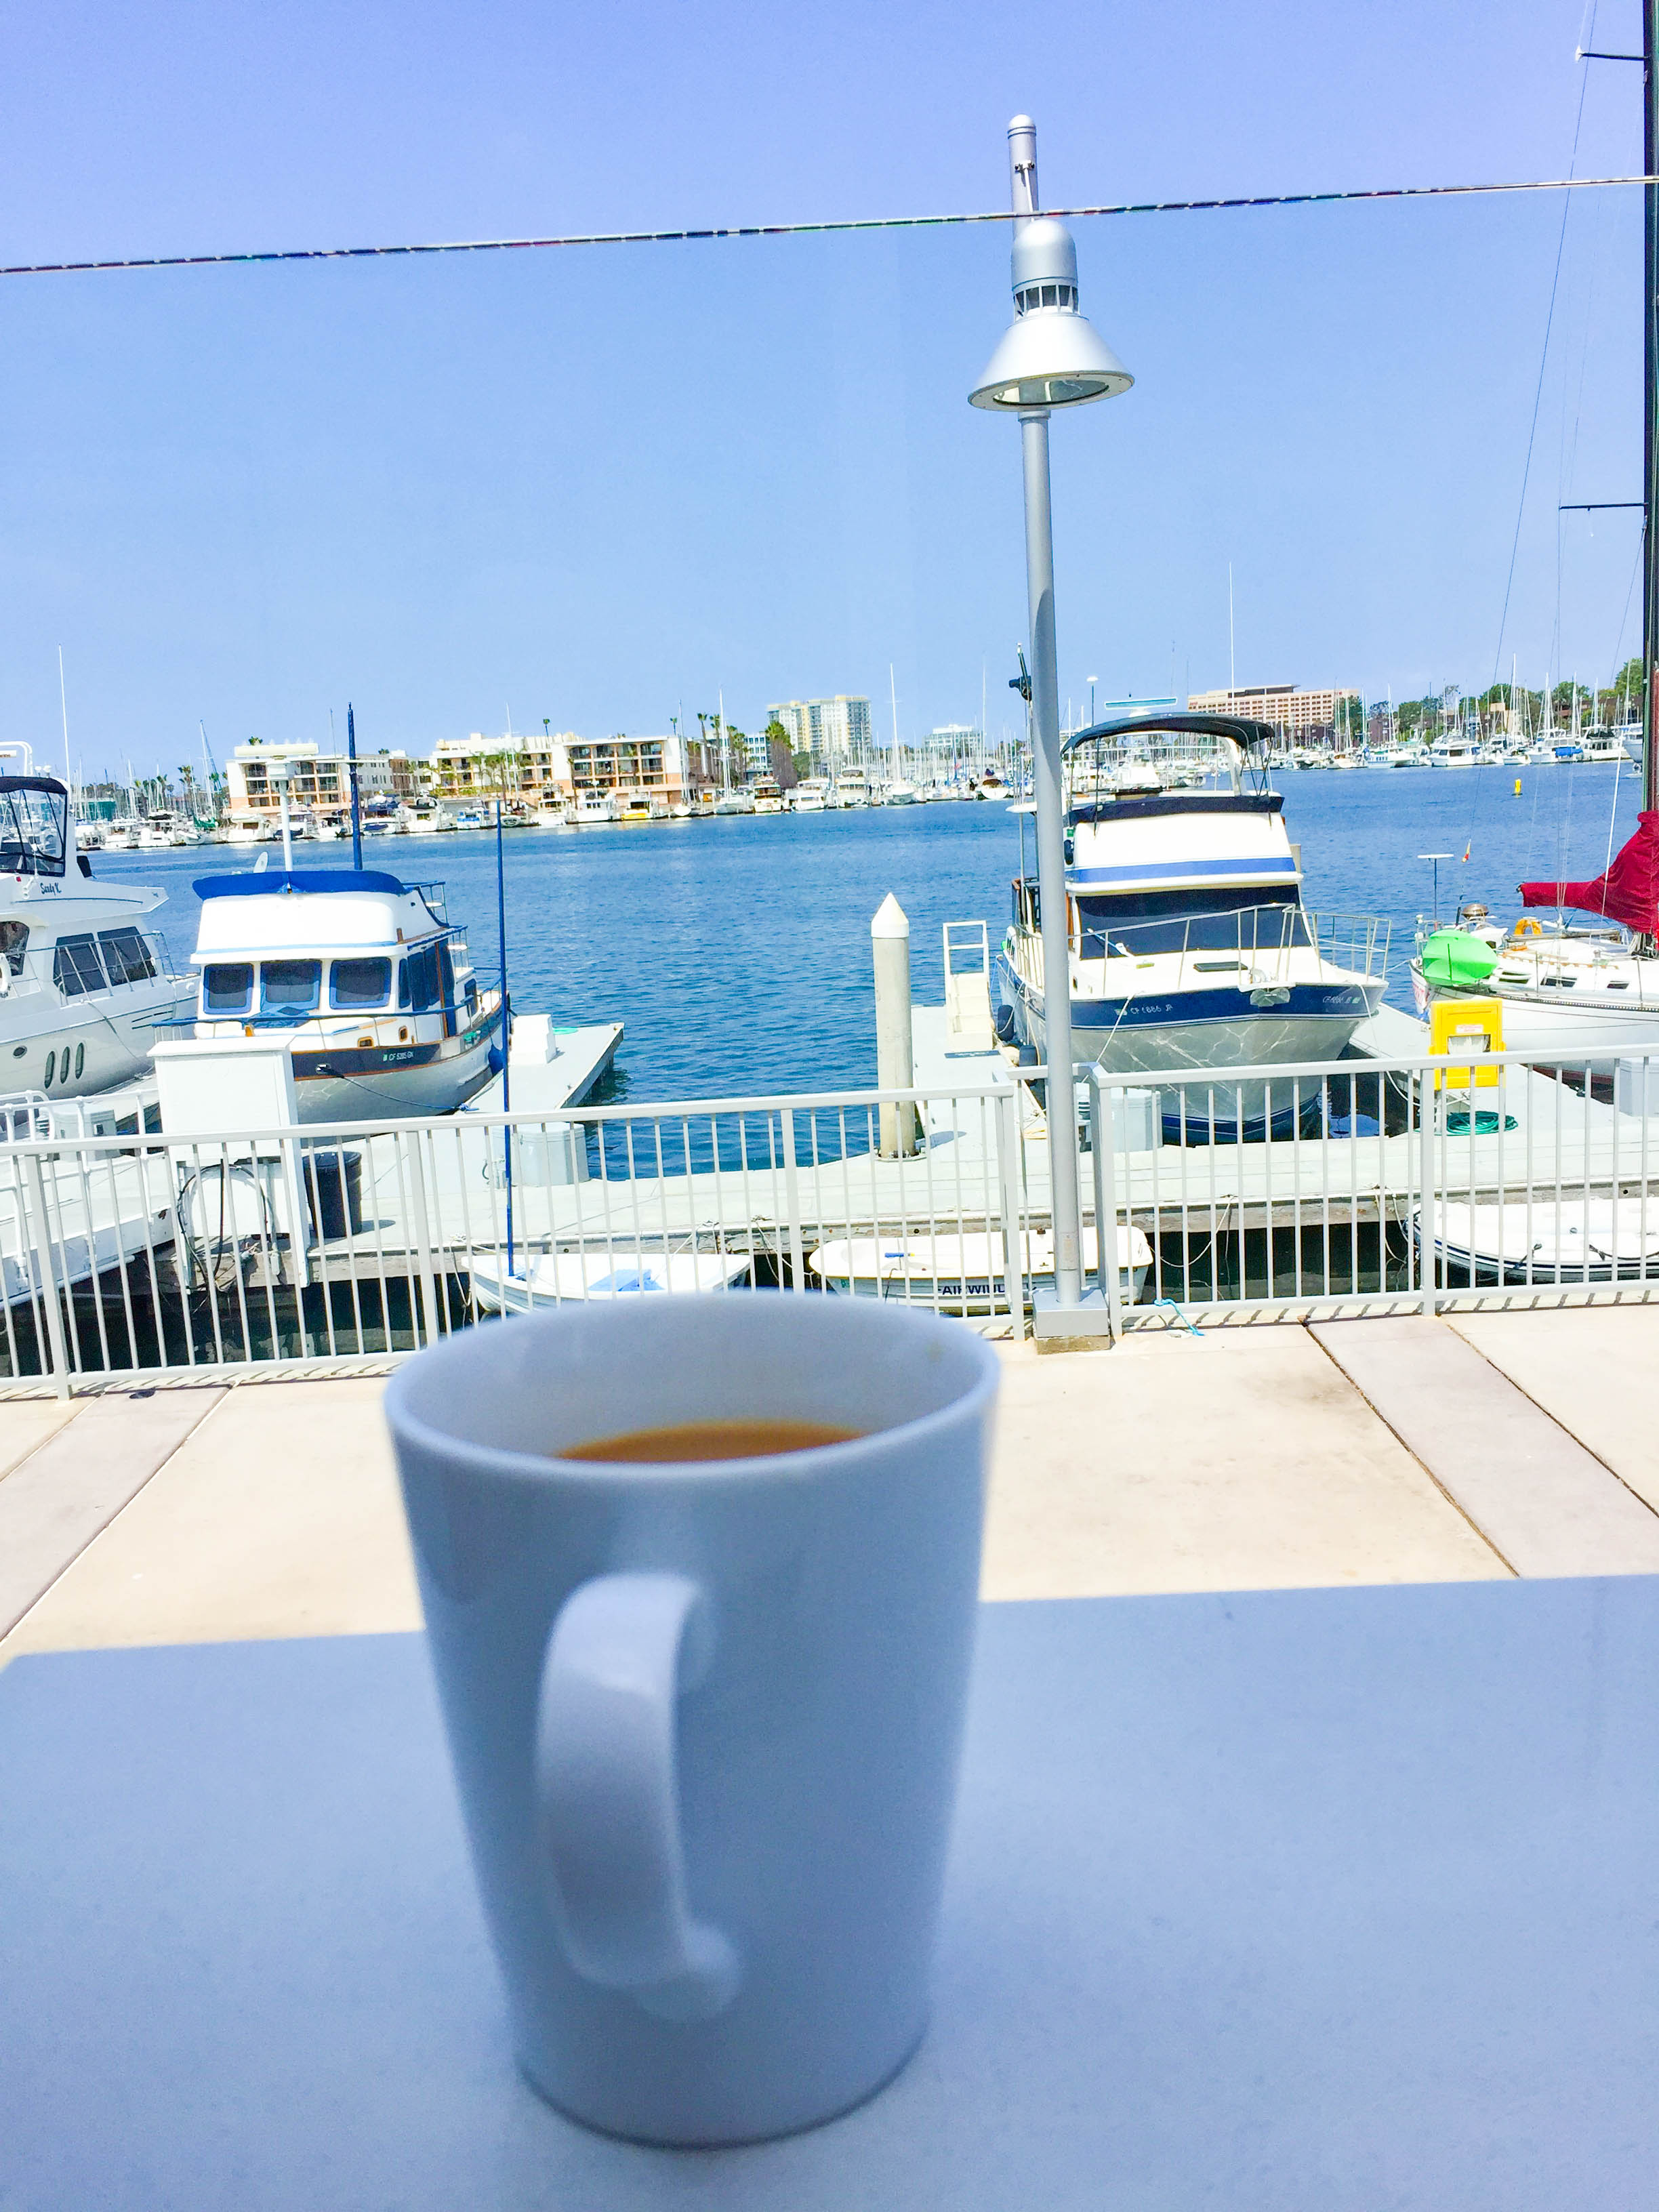 Salt brunch spot Marina Del Rey